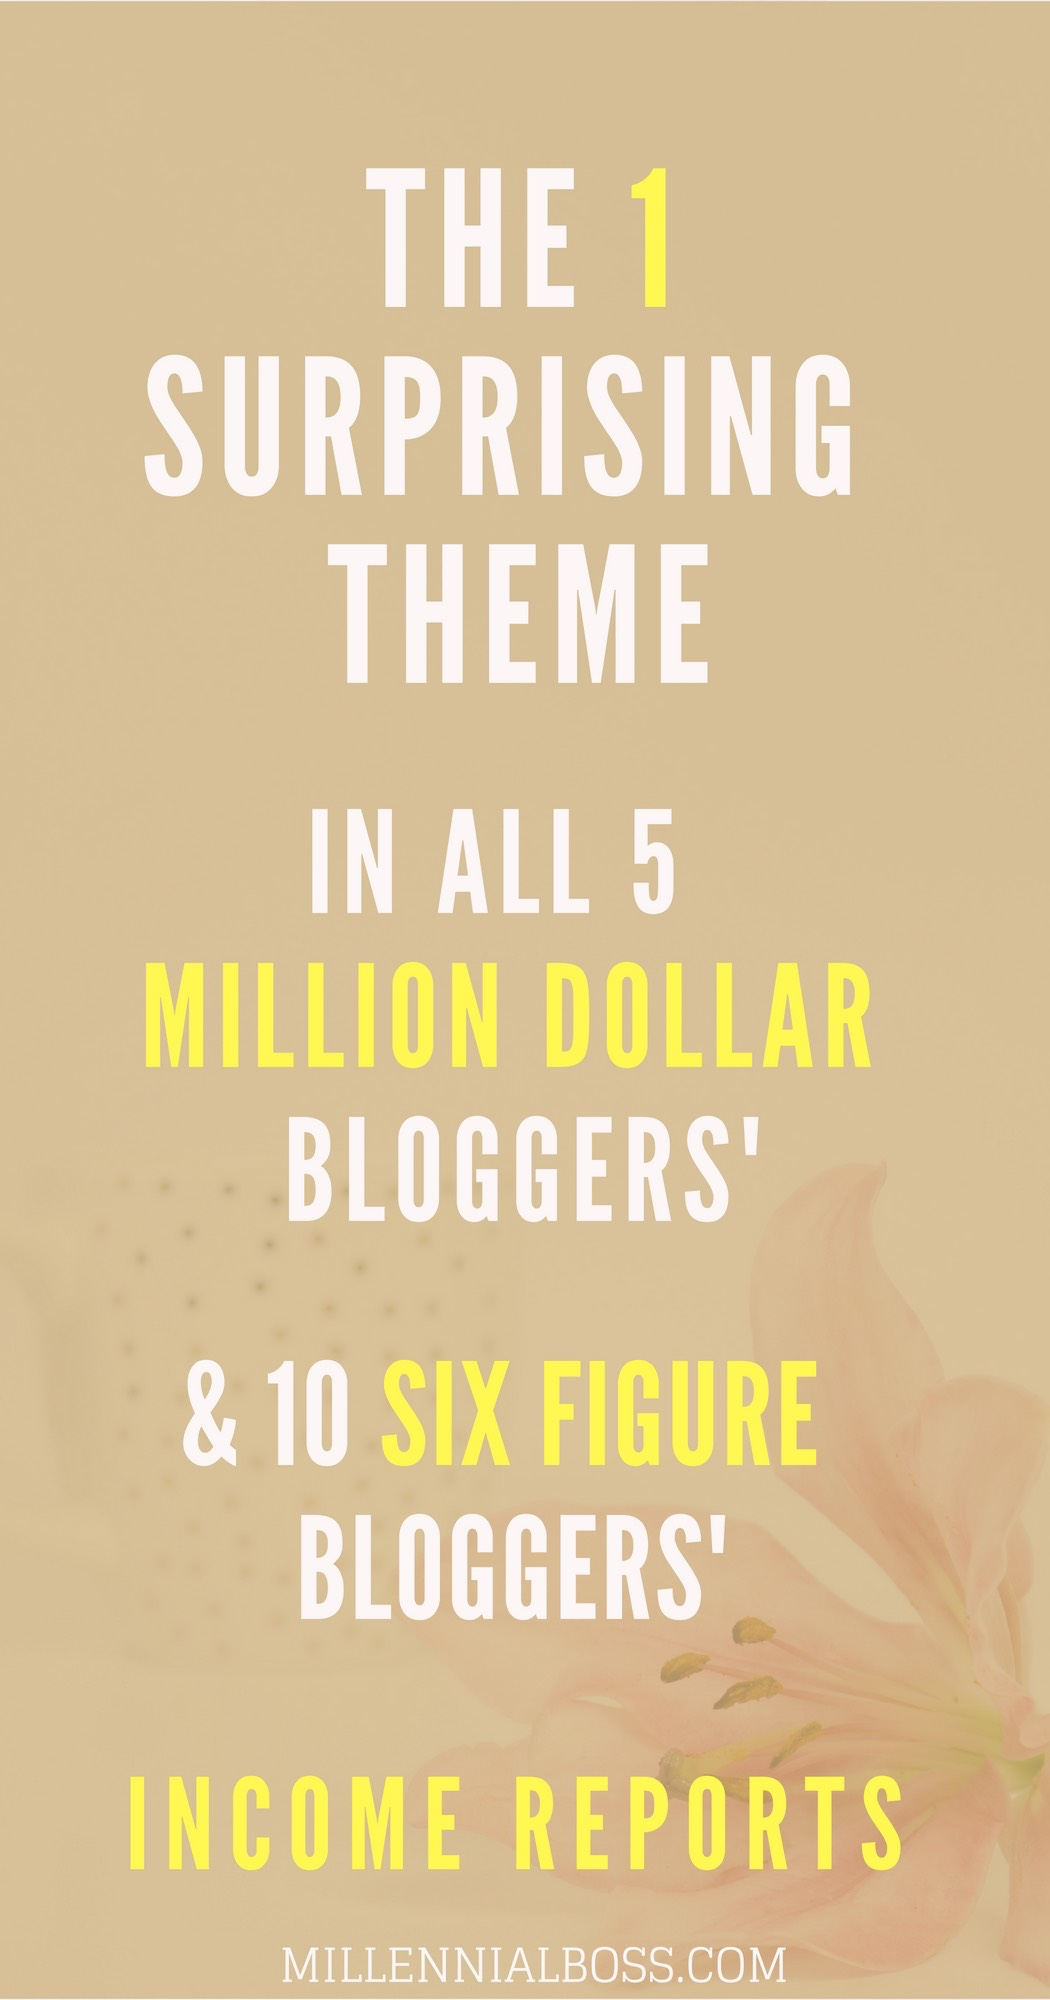 Wow! I never saw these themes in the top blogging income reports but all the top bloggers have these sources of income. Very true.